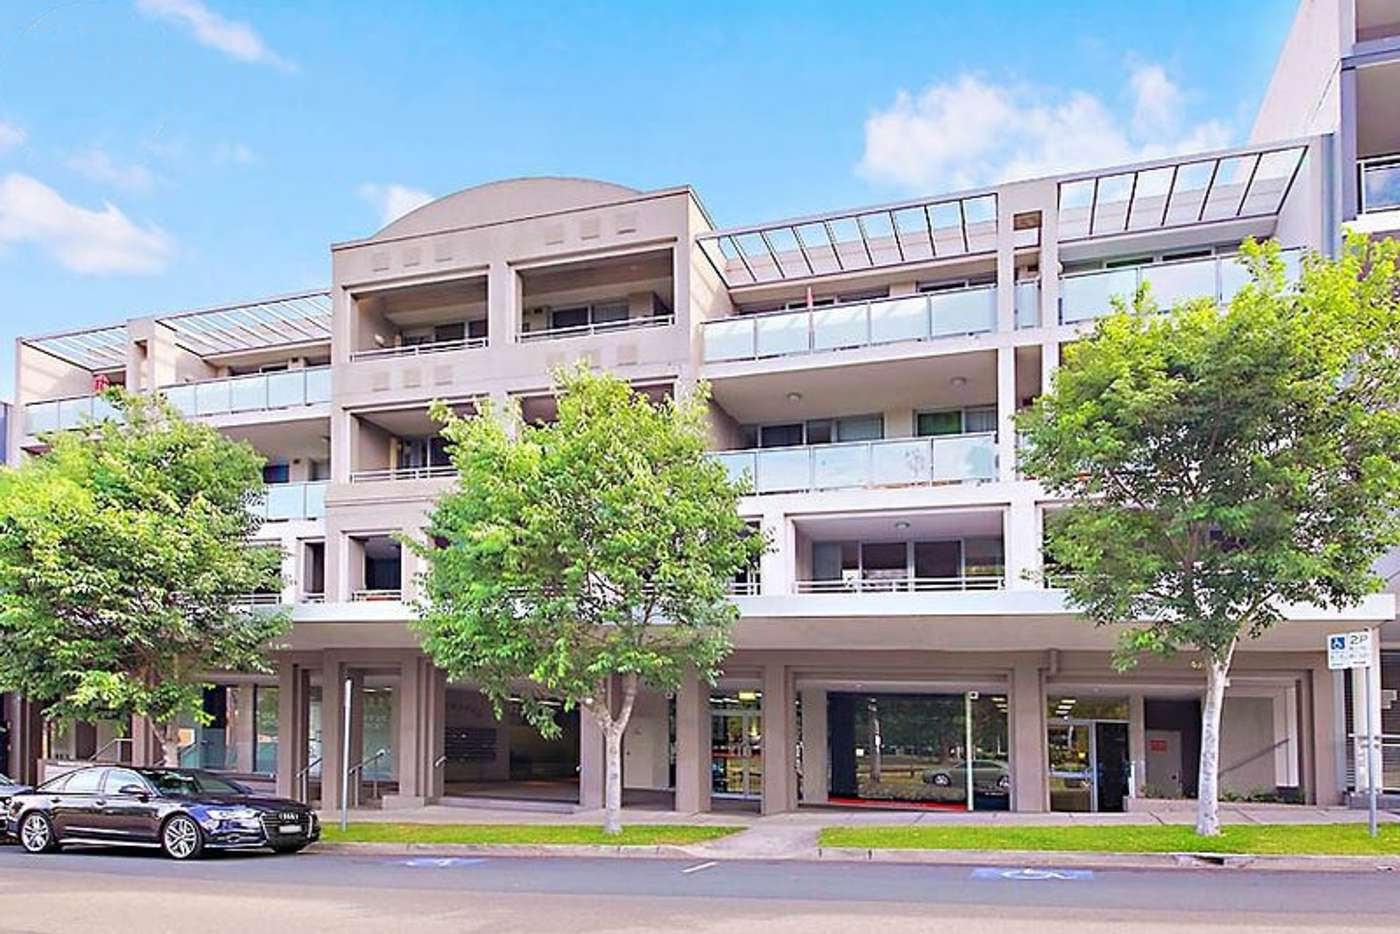 Main view of Homely apartment listing, 44/30 Herbert St, West Ryde NSW 2114